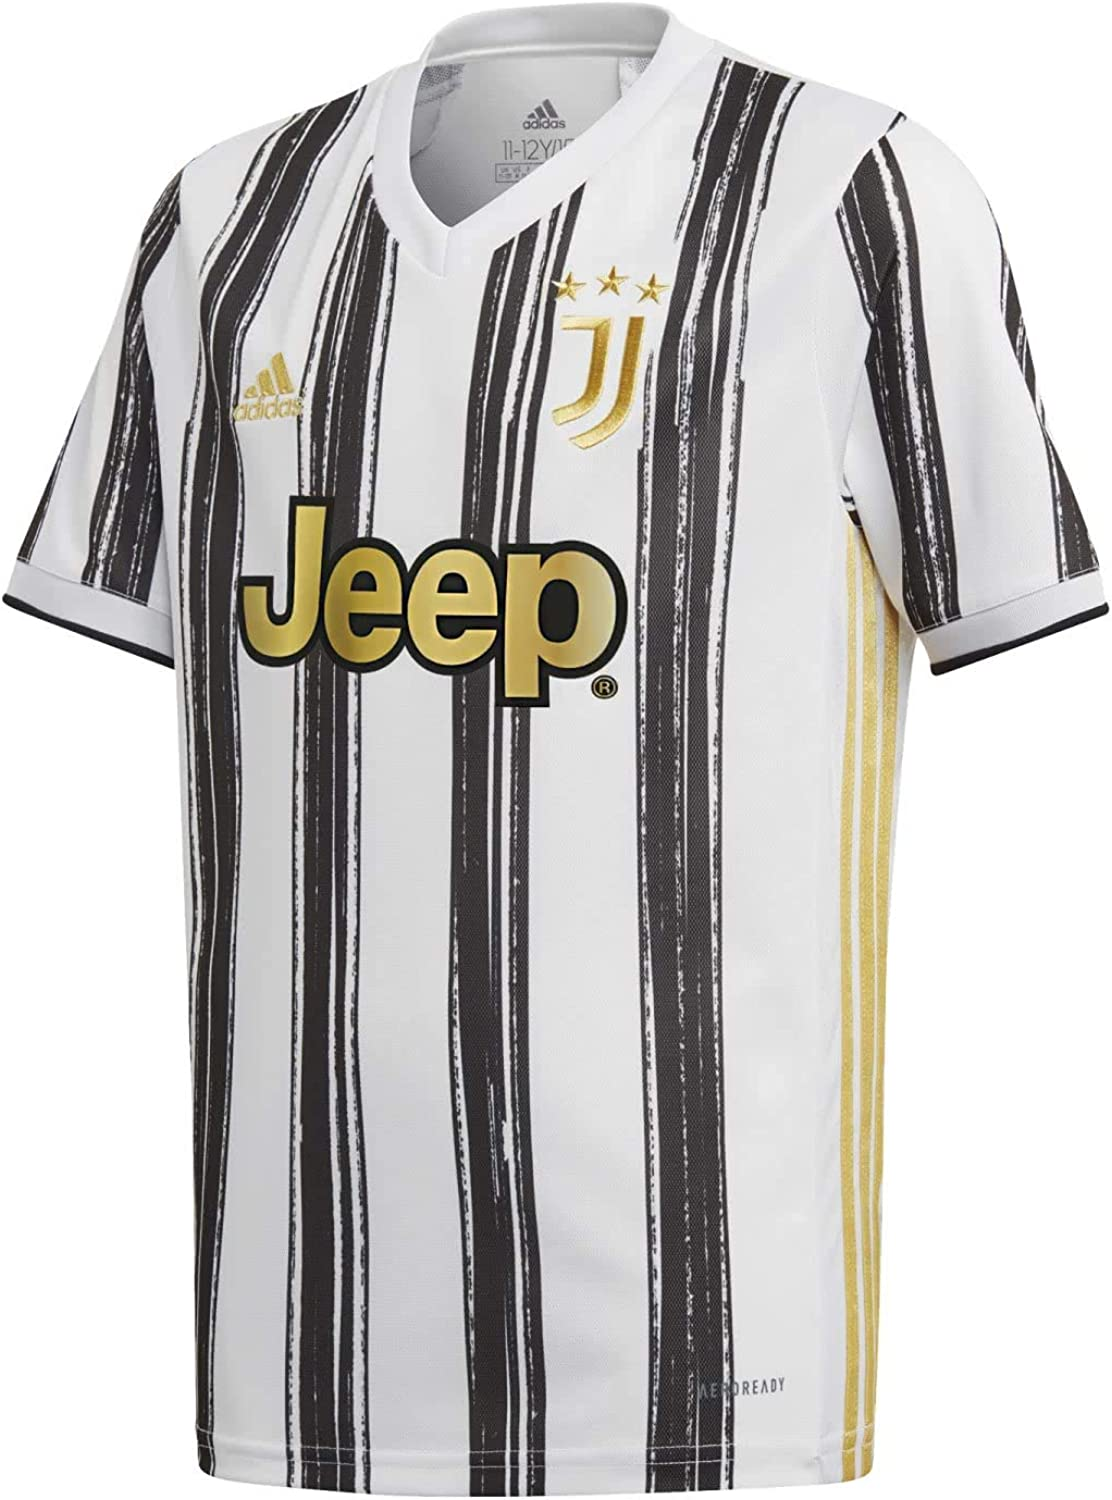 adidas 2020-2021 Juventus Home Football Soccer T-Shirt Jersey (Kids)